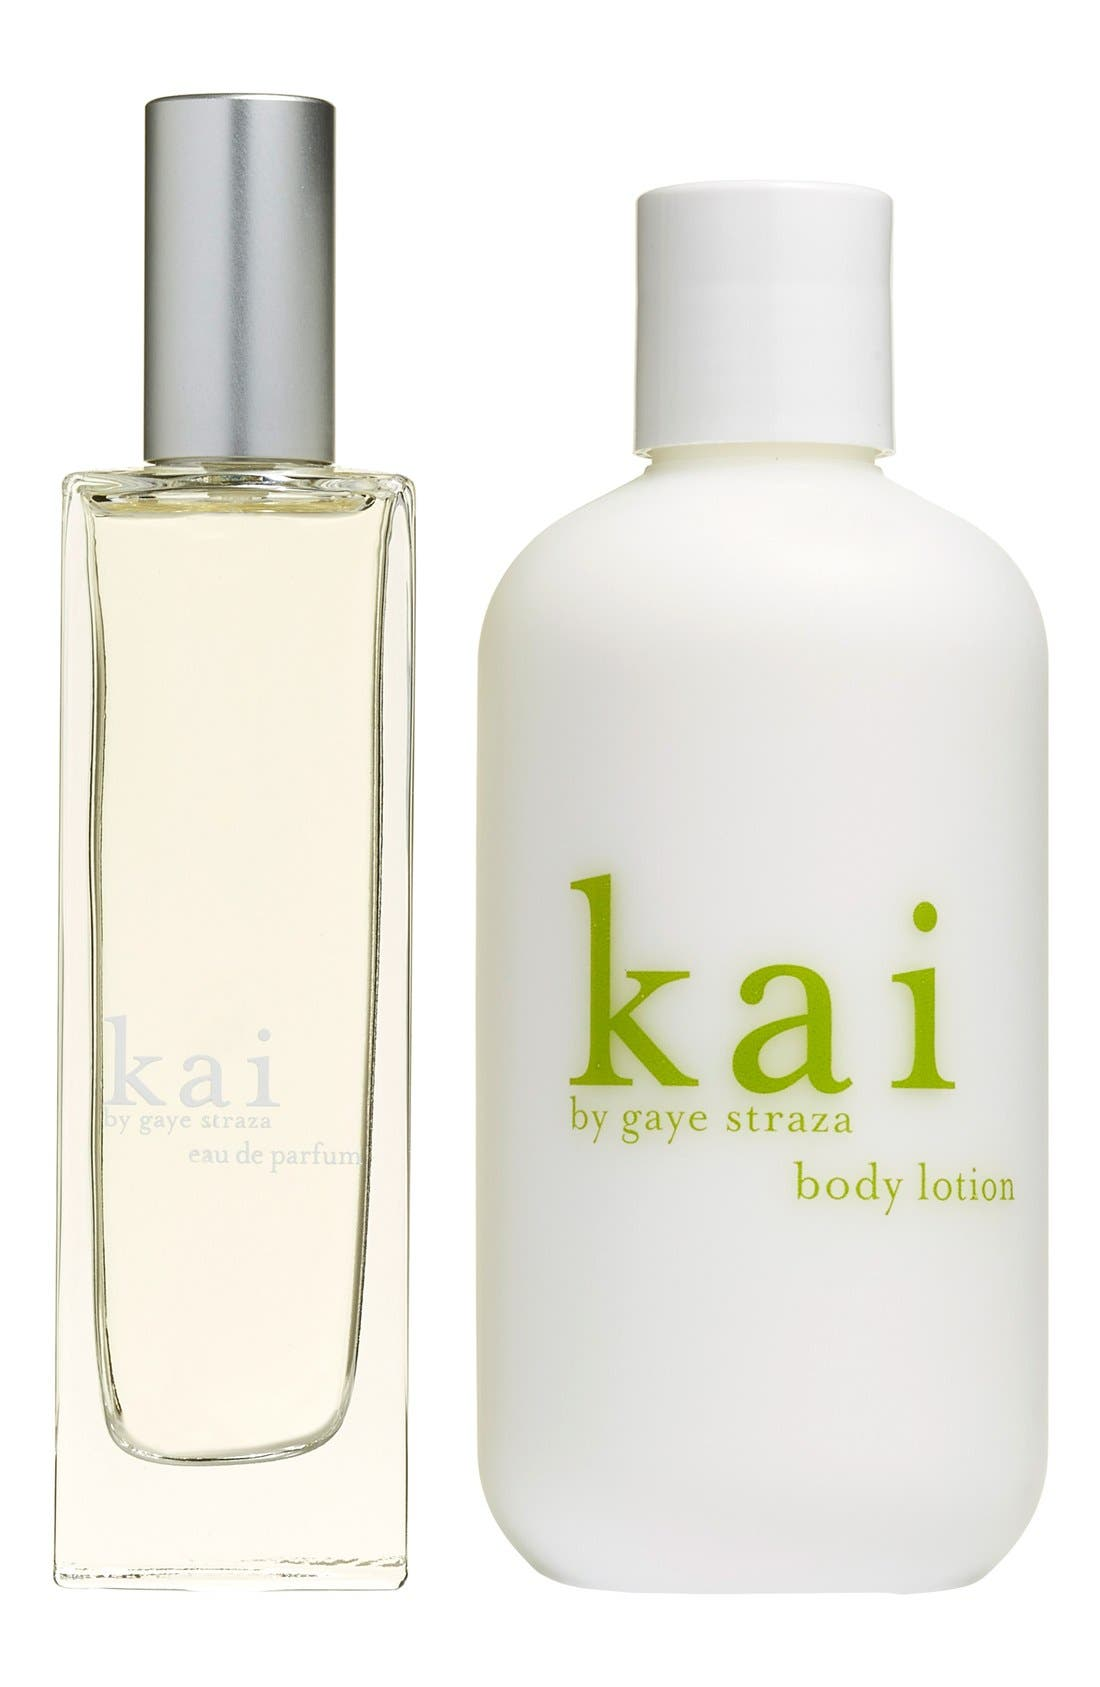 kai Holiday Set (Limited Edition) (Nordstrom Exclusive) ($113 Value)